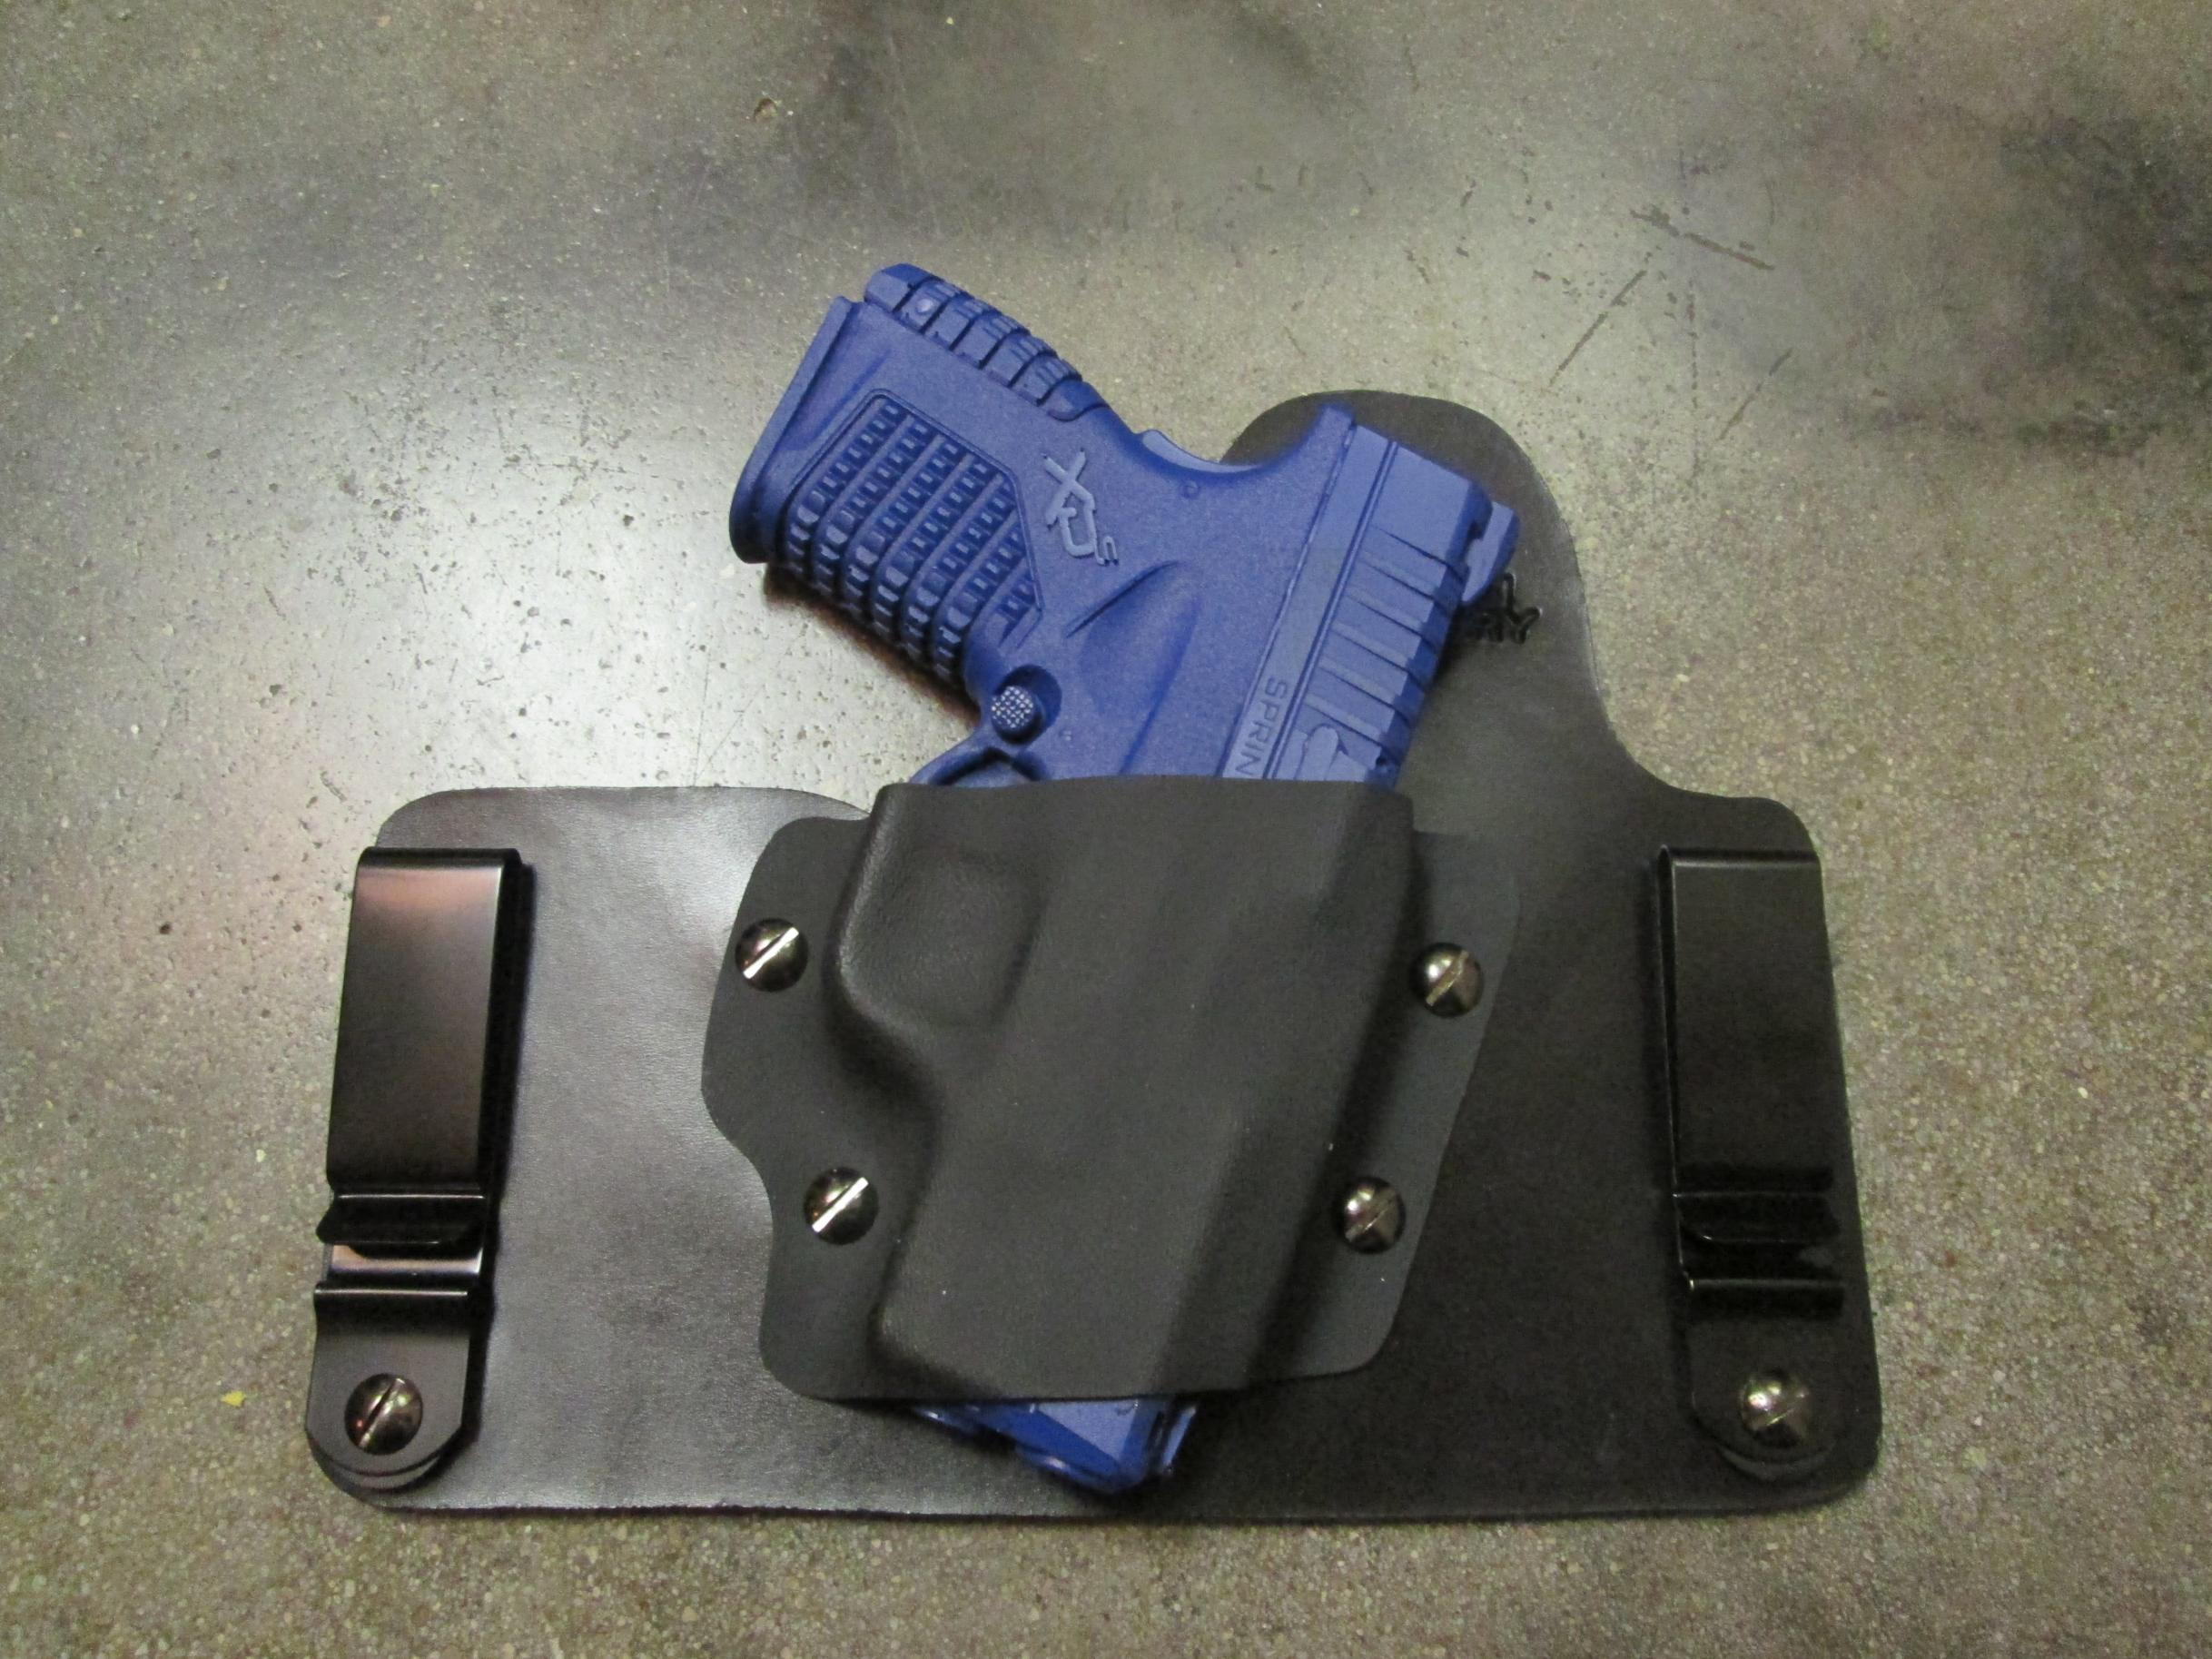 Attention XDs 3.3 Owners, A special offer for you...-zzzxds3.3-022.jpg